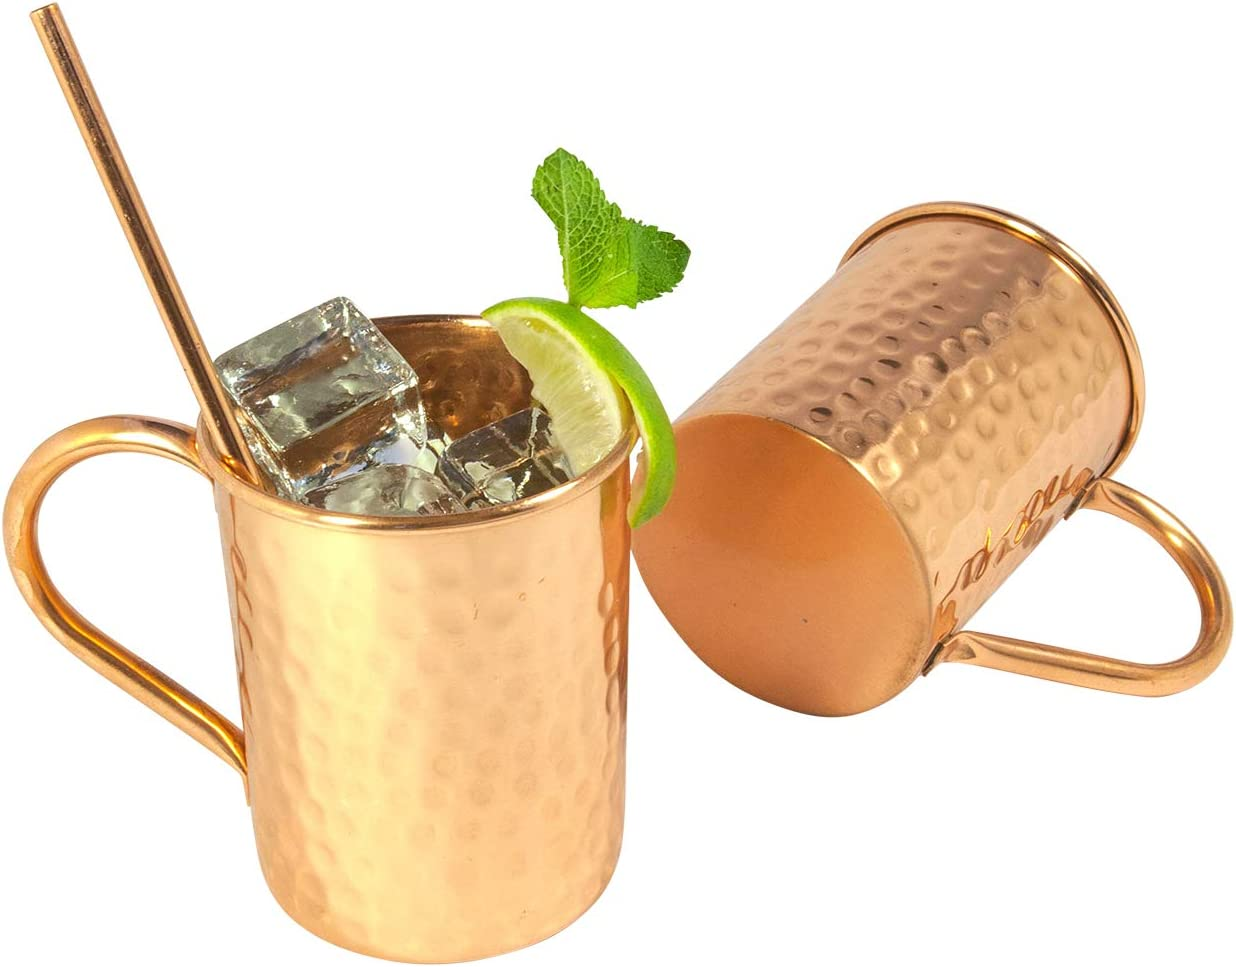 Artigee 4 Piece Moscow Mule Mug Set with Shot Glass /& Straws 100/% Pure Copper 4 Handcrafted Mugs Featuring Hammered Finish Copper Shot Glass Includes Premium Gift Box 4 Copper Straws 16 oz